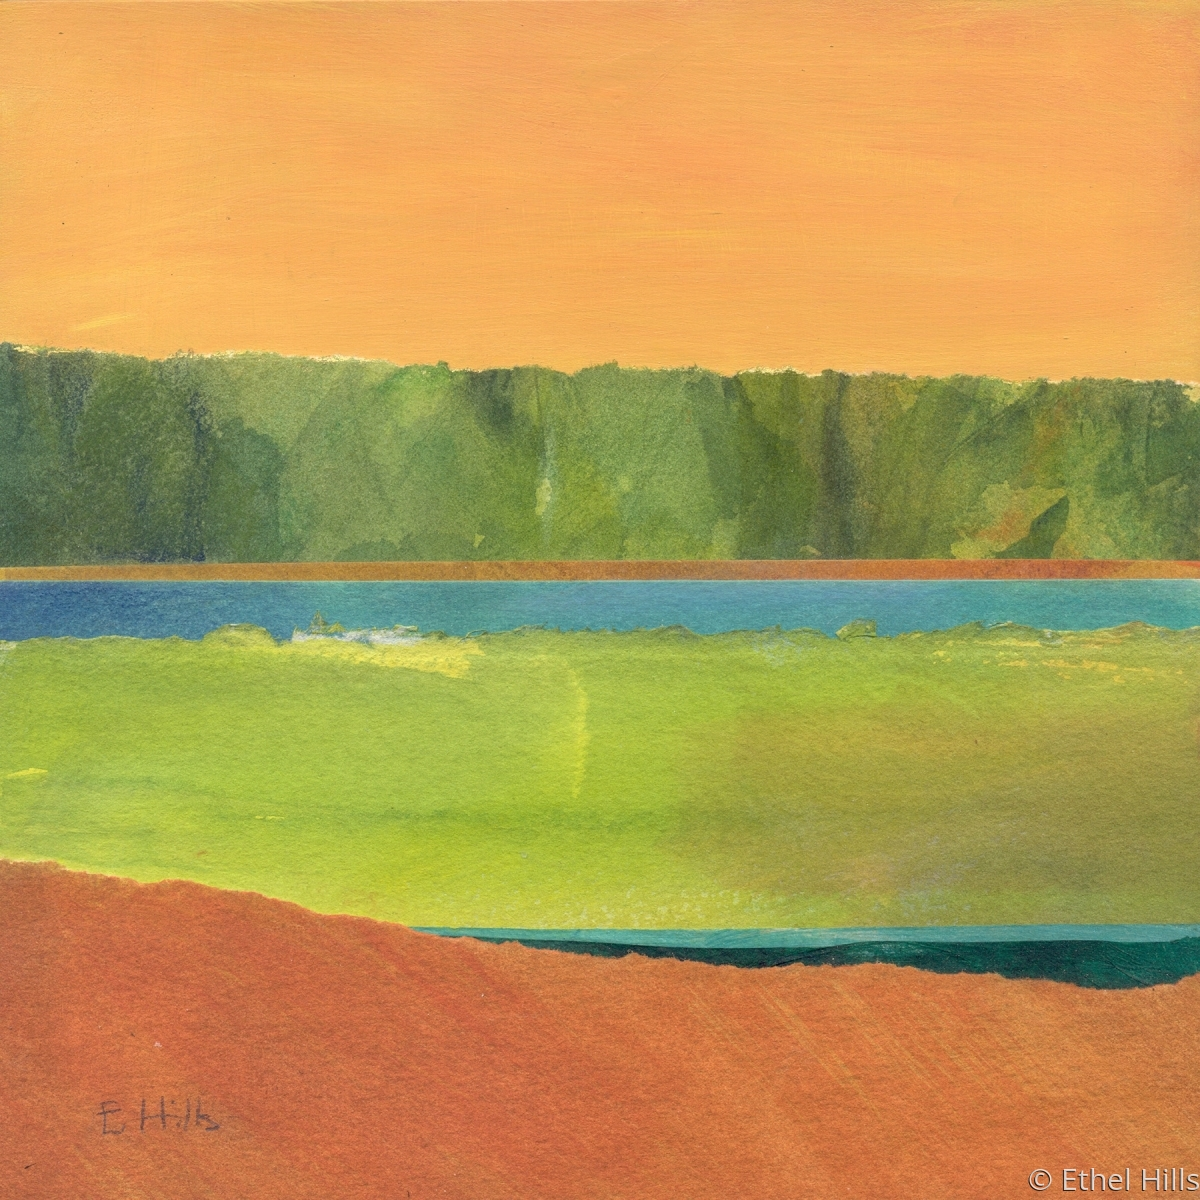 "Ethel Hills - ""Color Block #1 - 8"" panel"". Semi-abstract painting of the salt marsh using collage in orange and green.  (large view)"